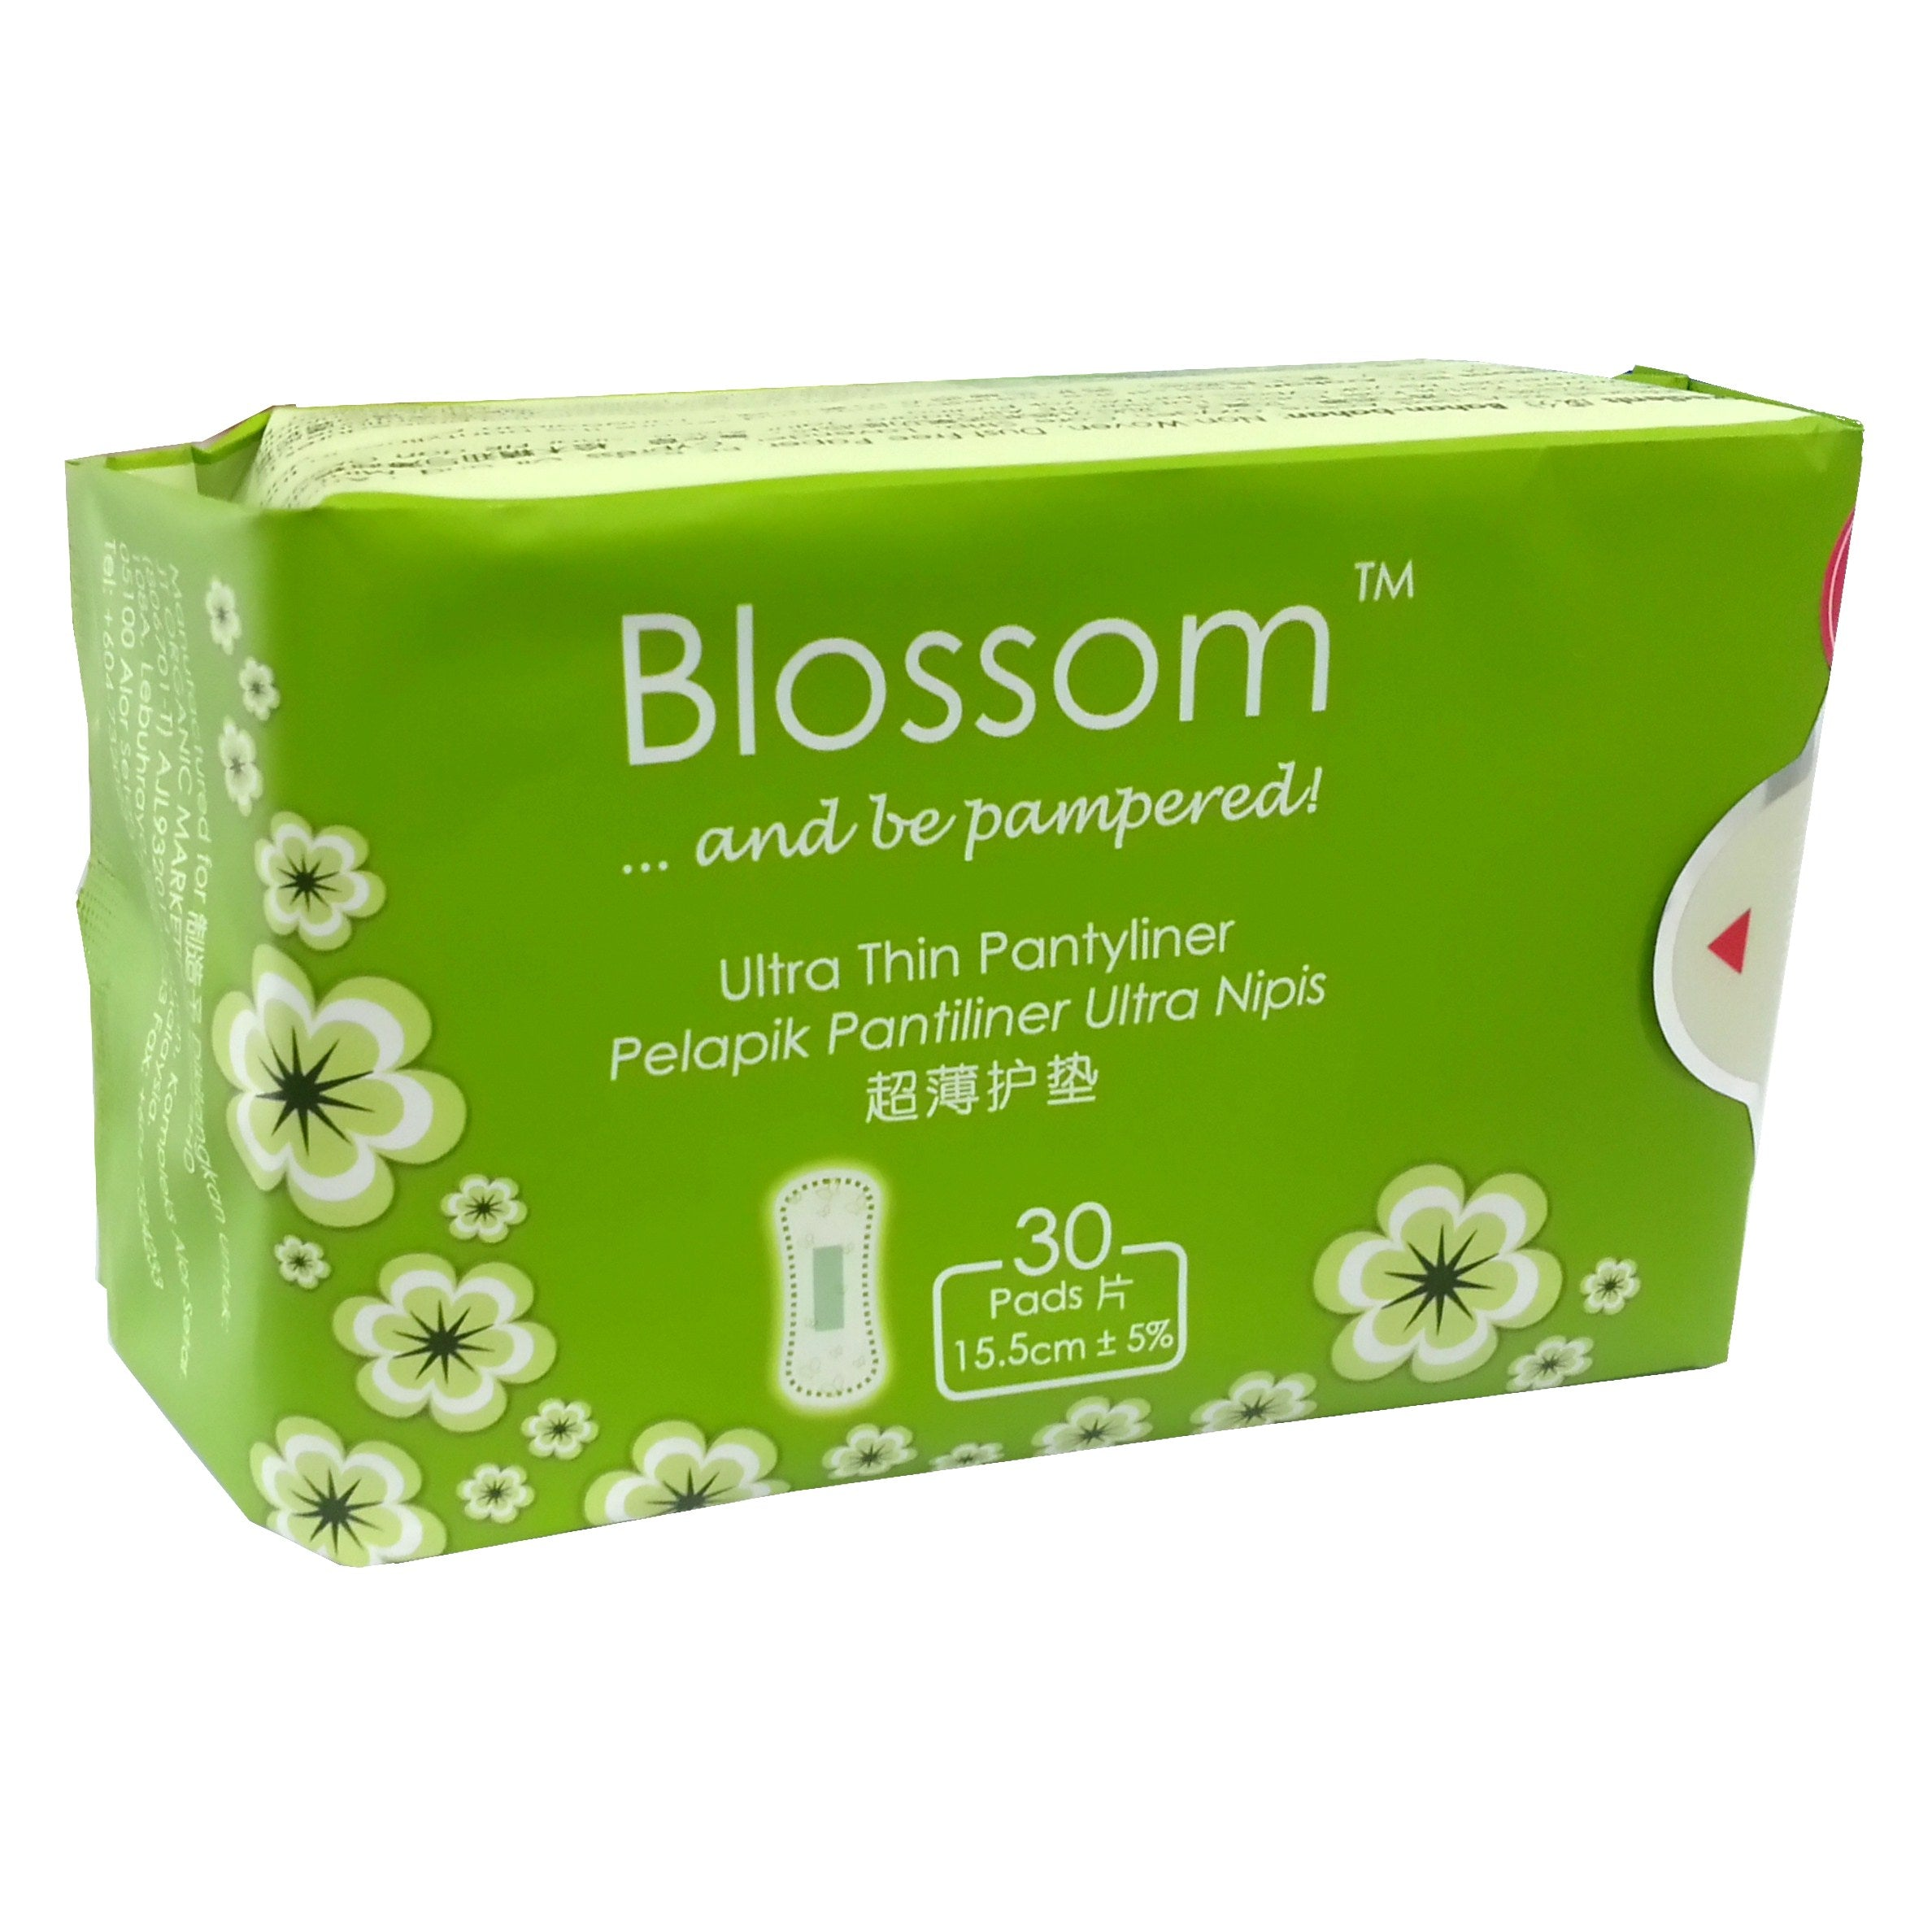 Blossom Ultra Thin Pantyliner 30pads